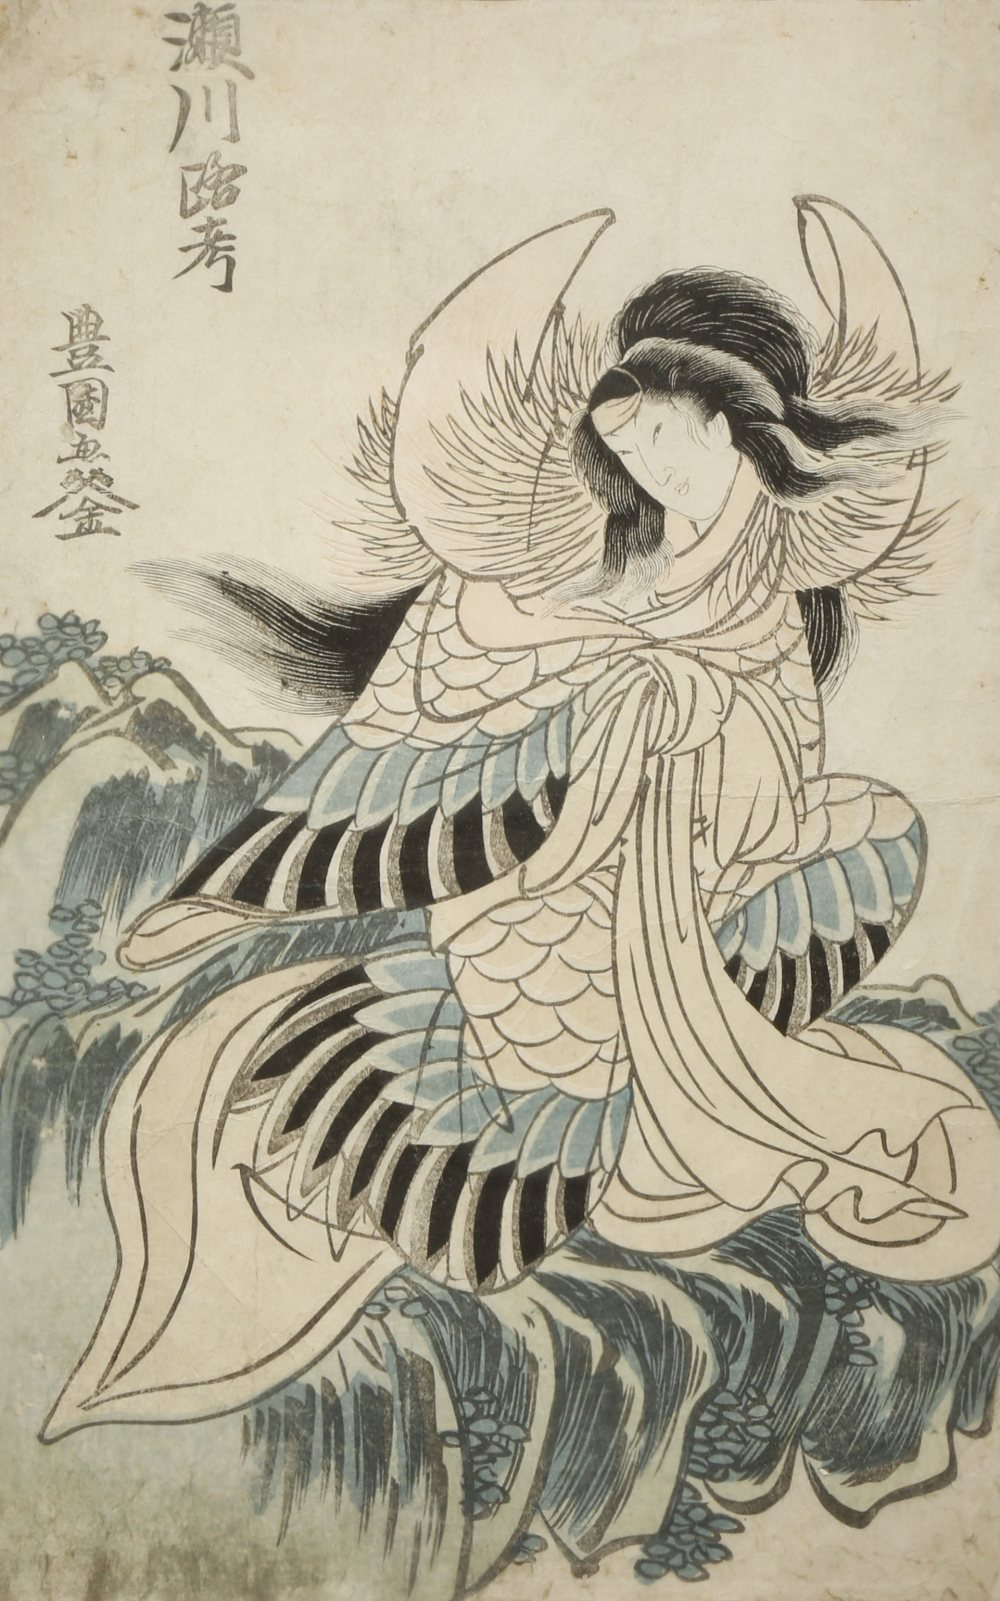 A SMALL COLLECTION OF SIX JAPANESE WOODBLOCK PRINTS EDO AND MEIJI PERIOD, 19TH CENTURY Variously - Image 3 of 6